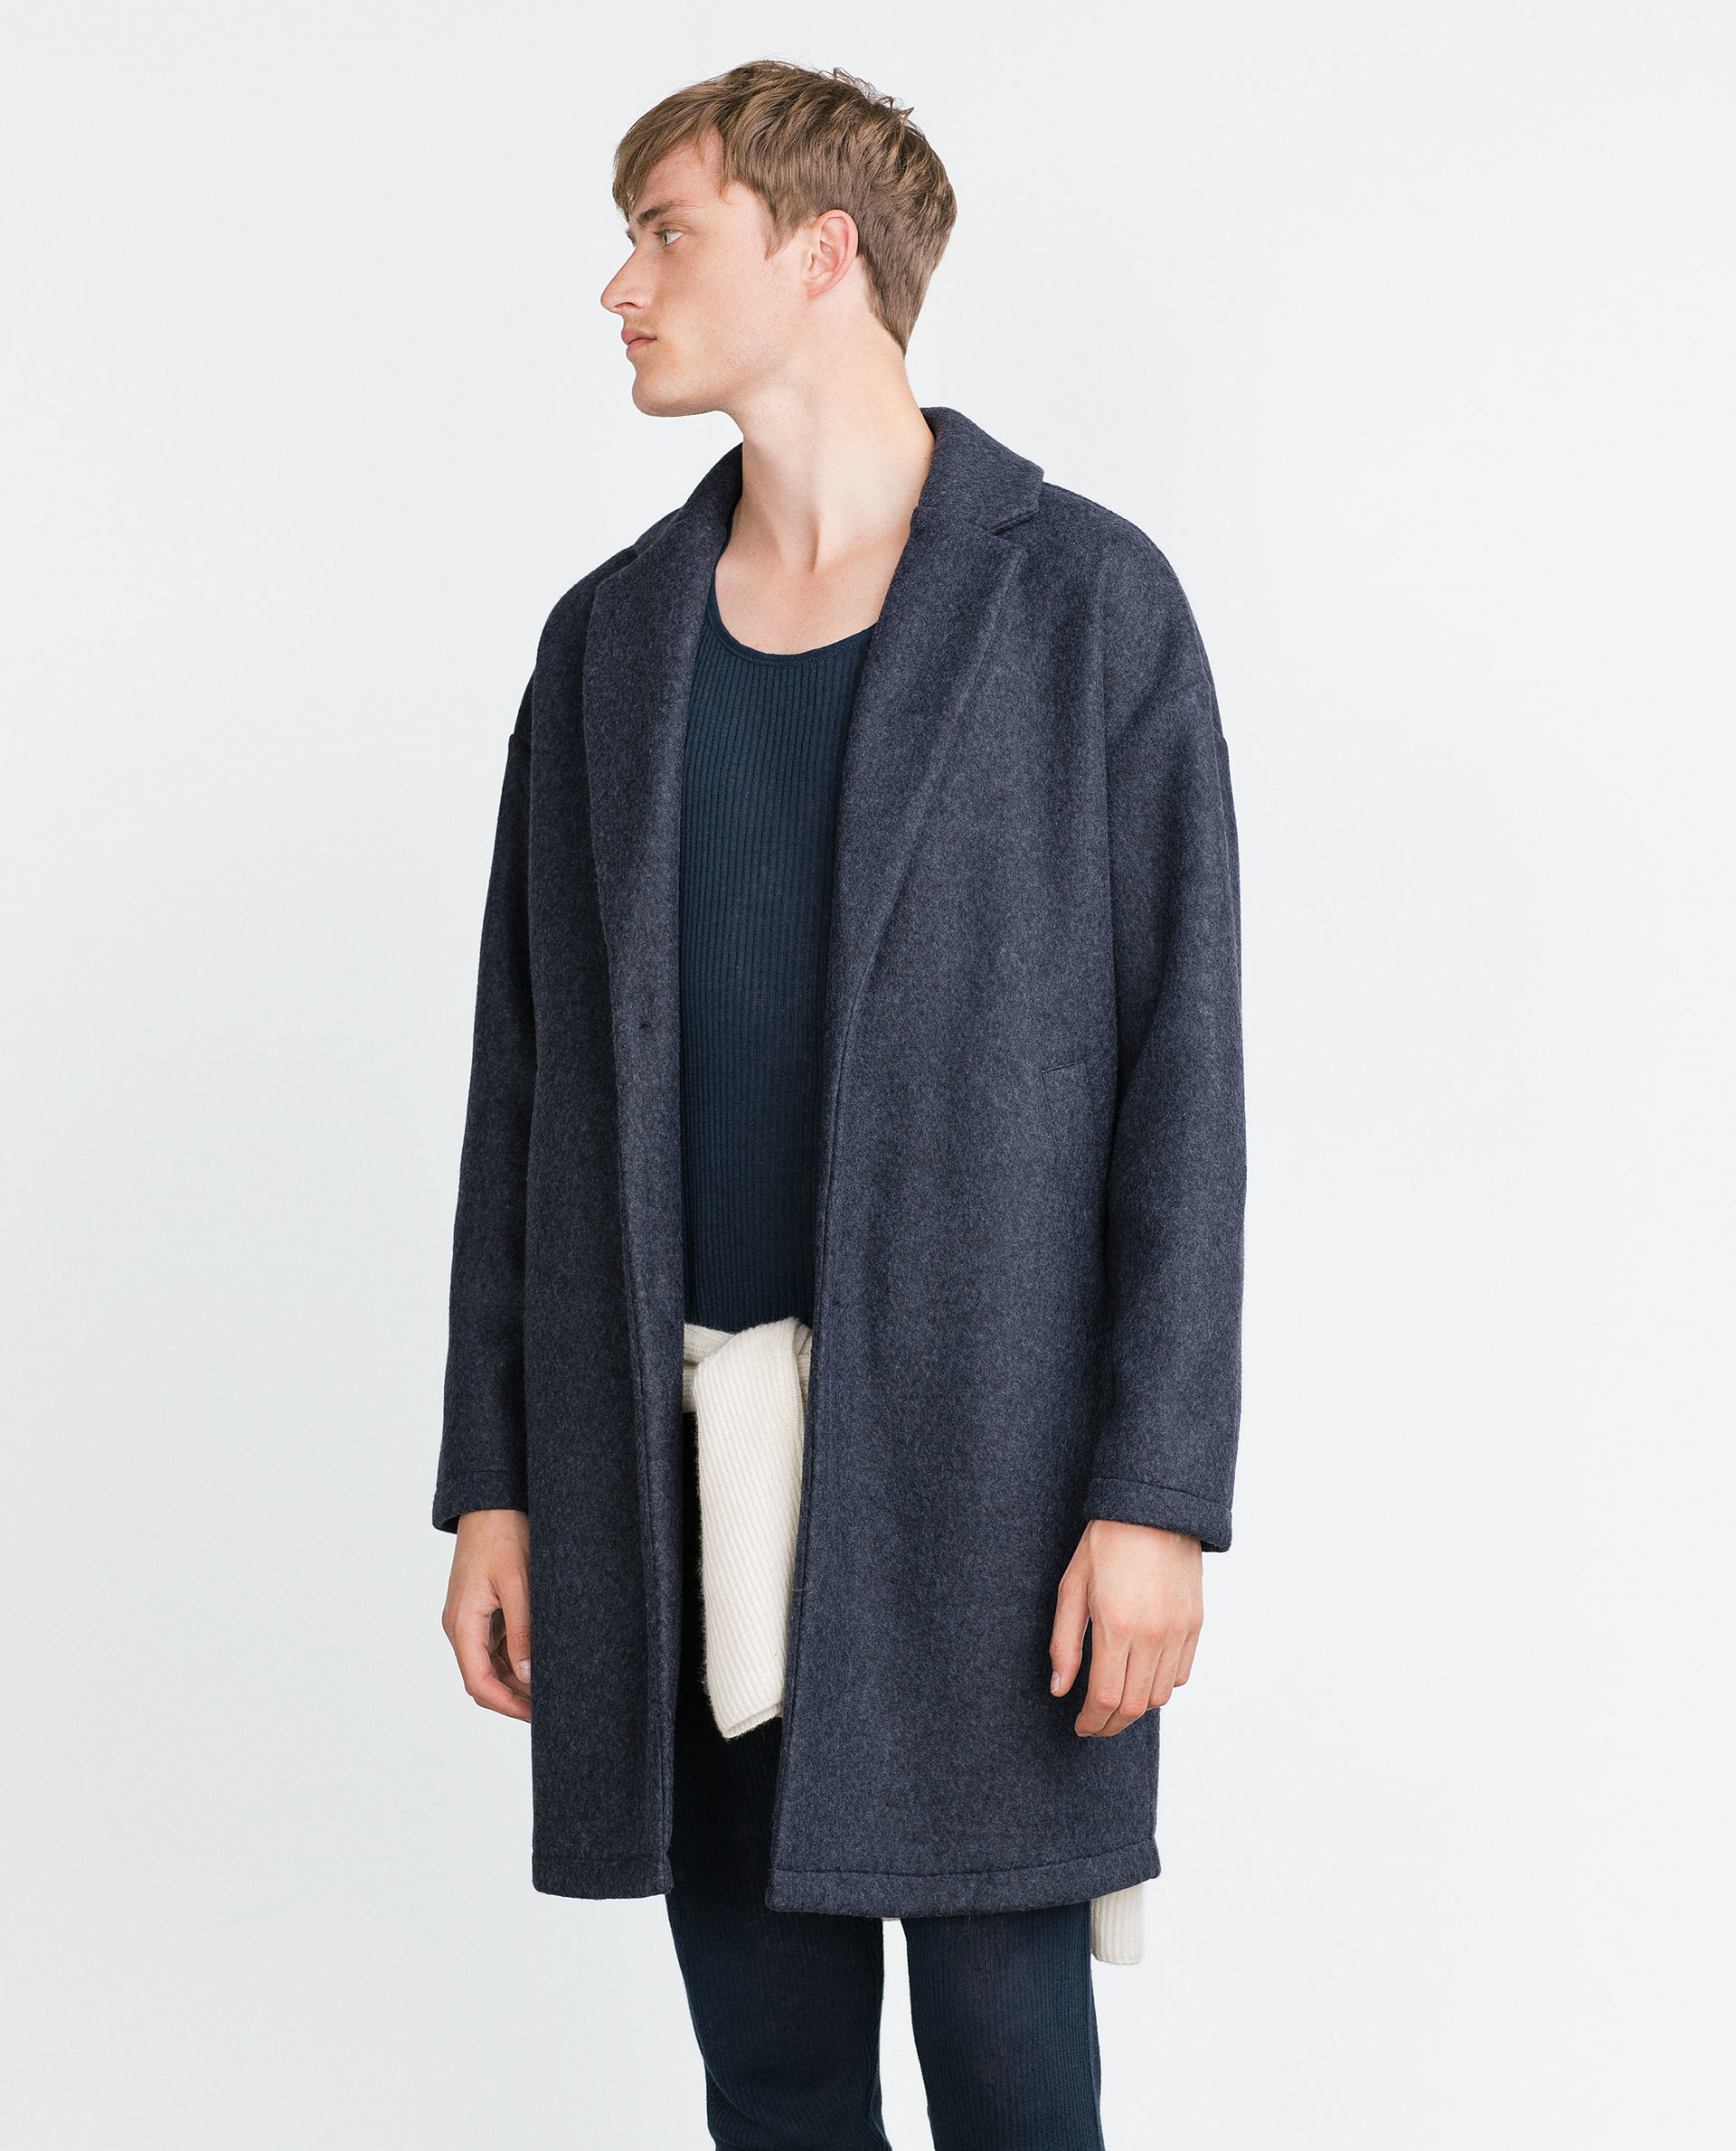 Rent Powder Blue Oversized Boucle Coat by English Factory for $30 only at Rent the Runway.9/